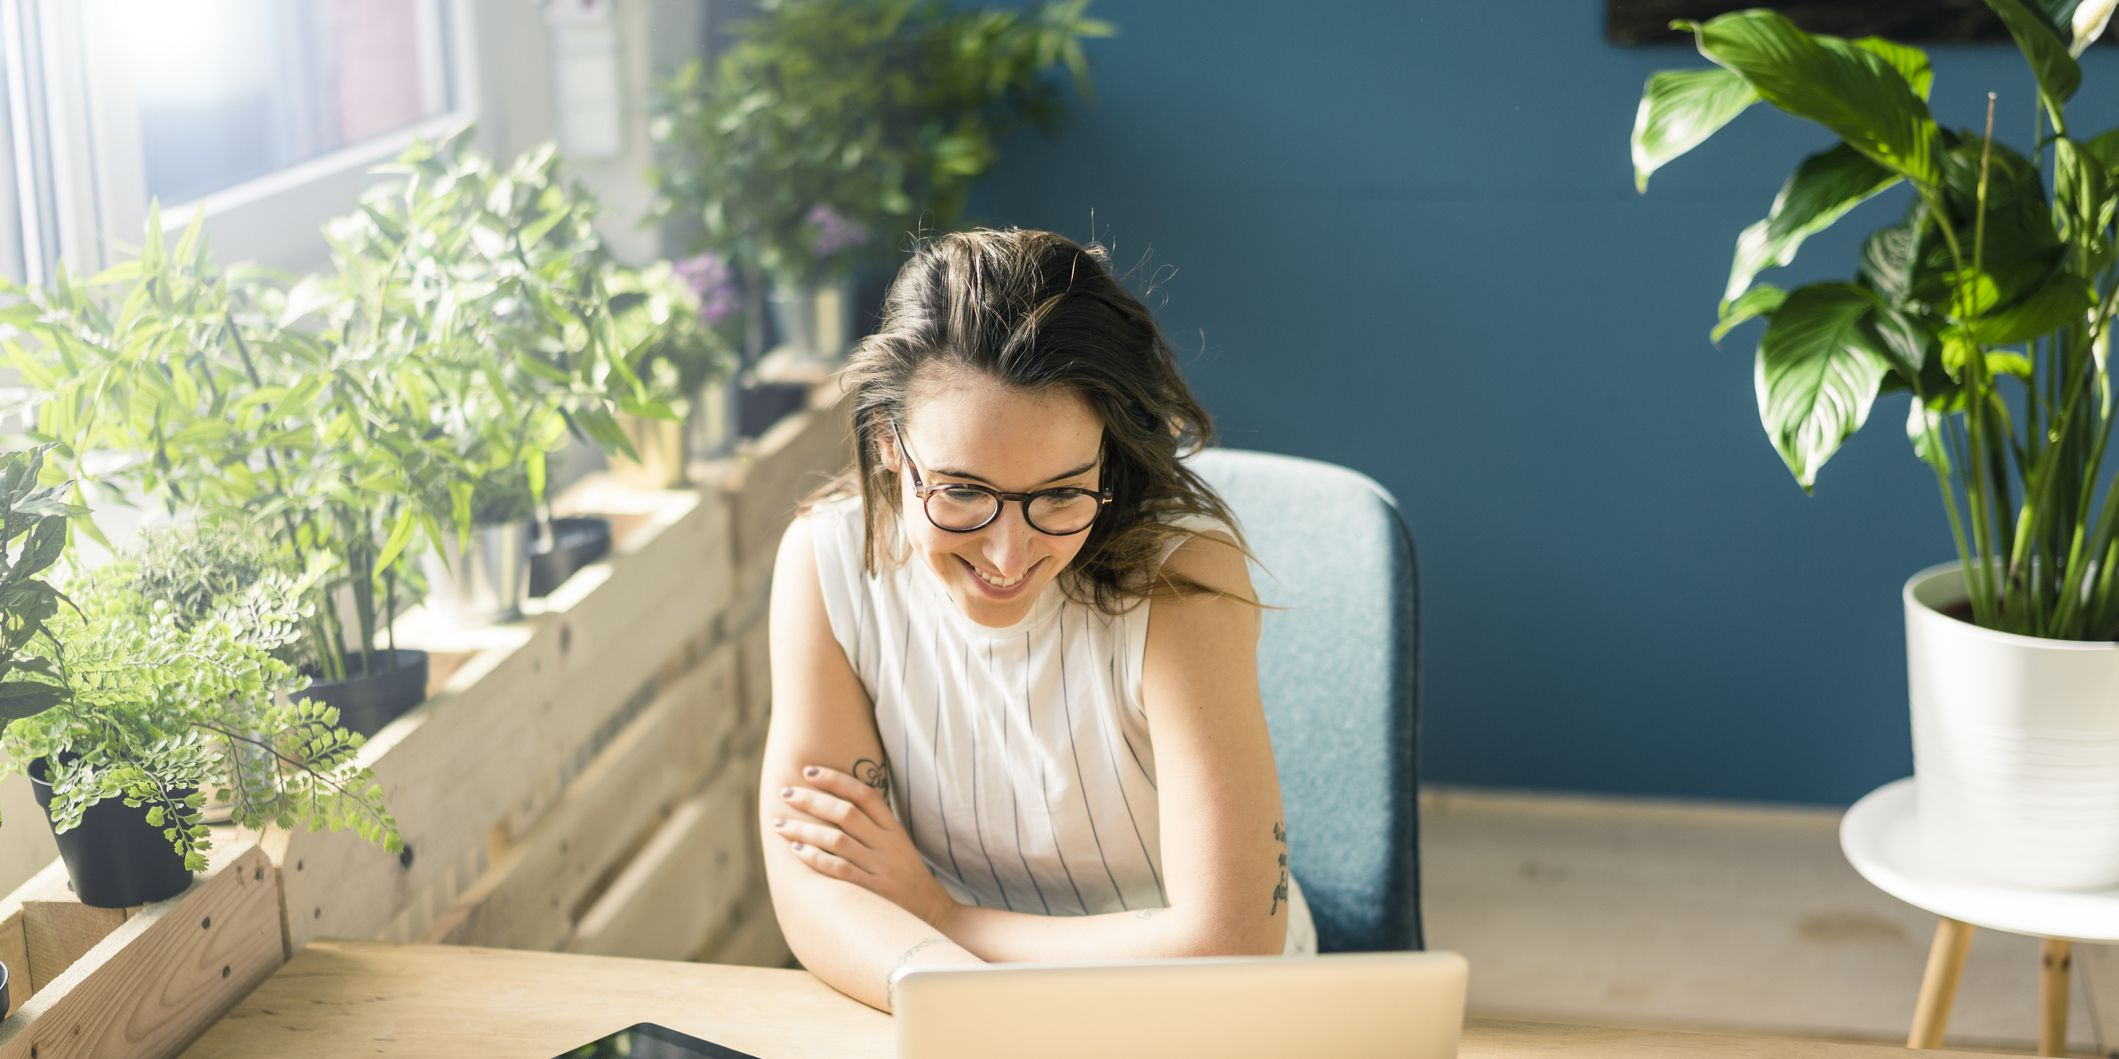 Why Achieving Your Latest Life Goal Can Actually Stress You Out - Women's Health UK